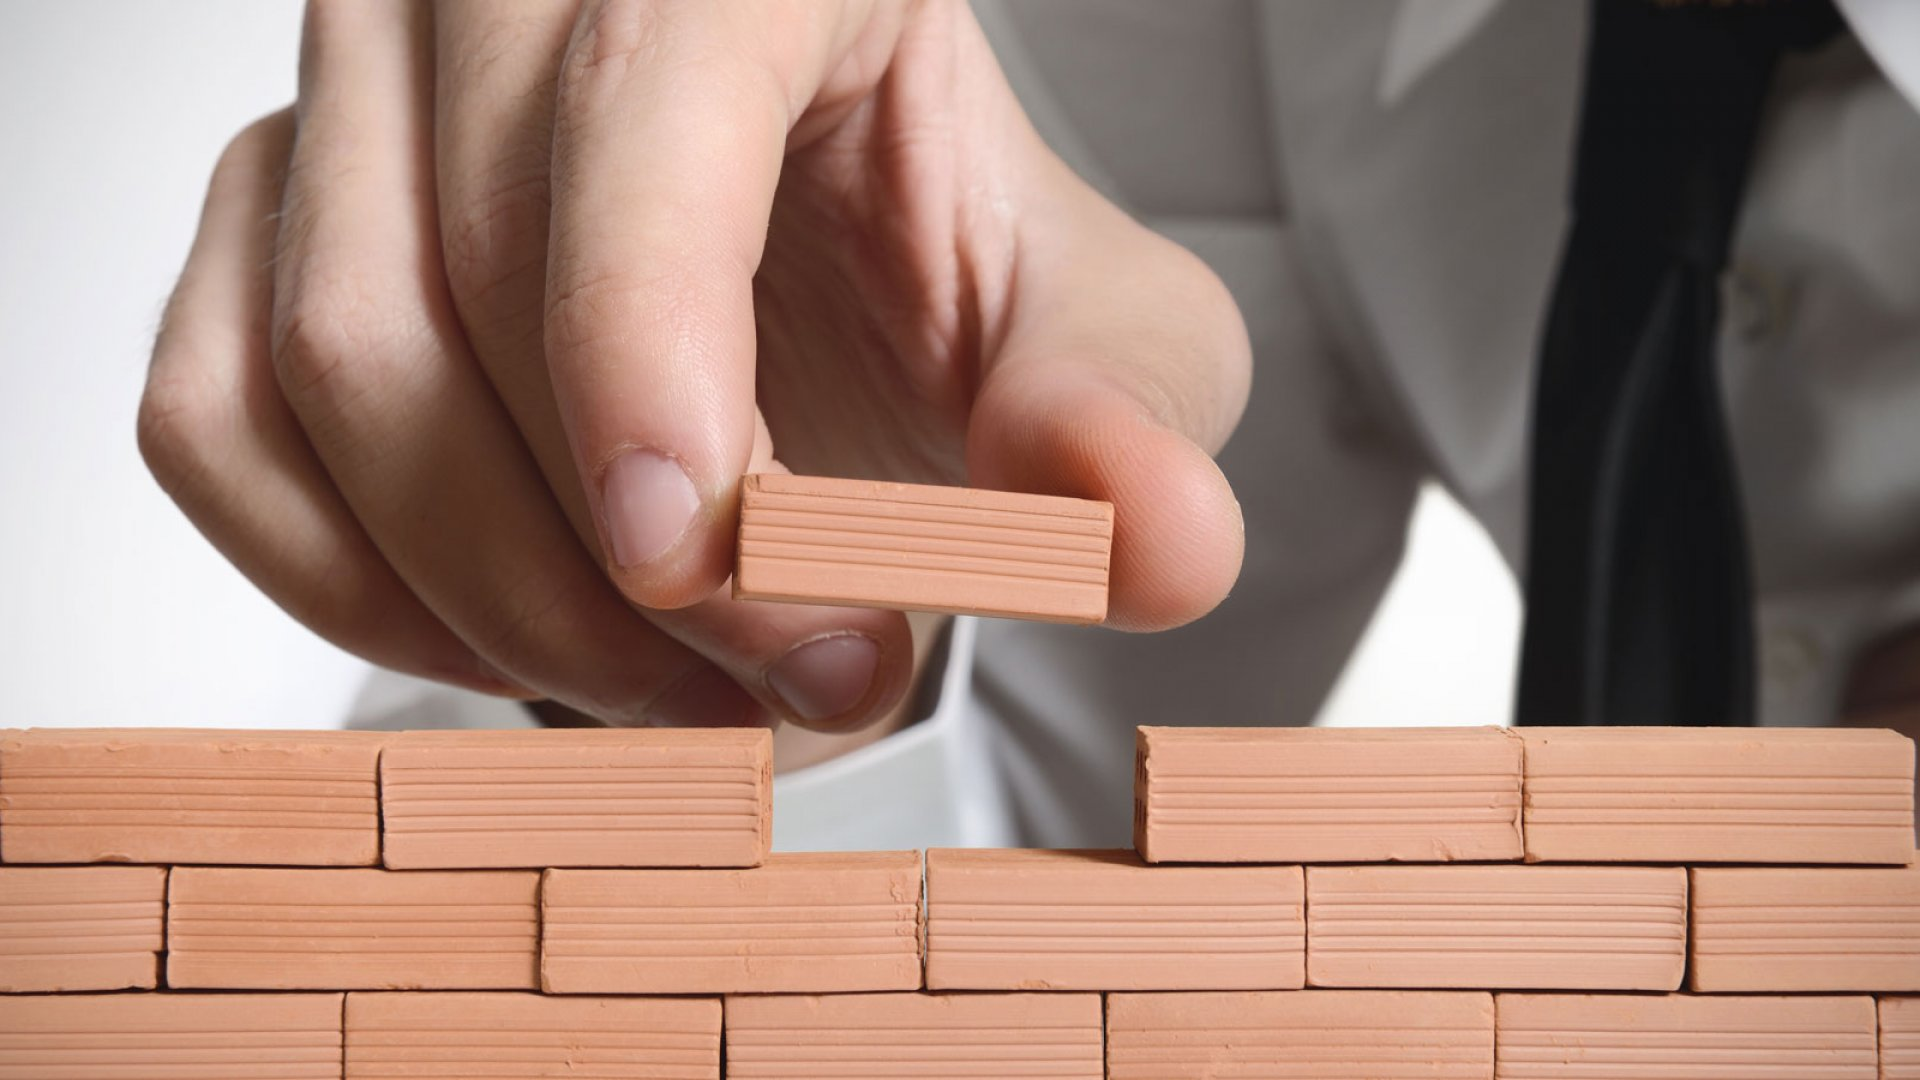 Built to Scale: Why Growth Entrepreneurs Need Structure